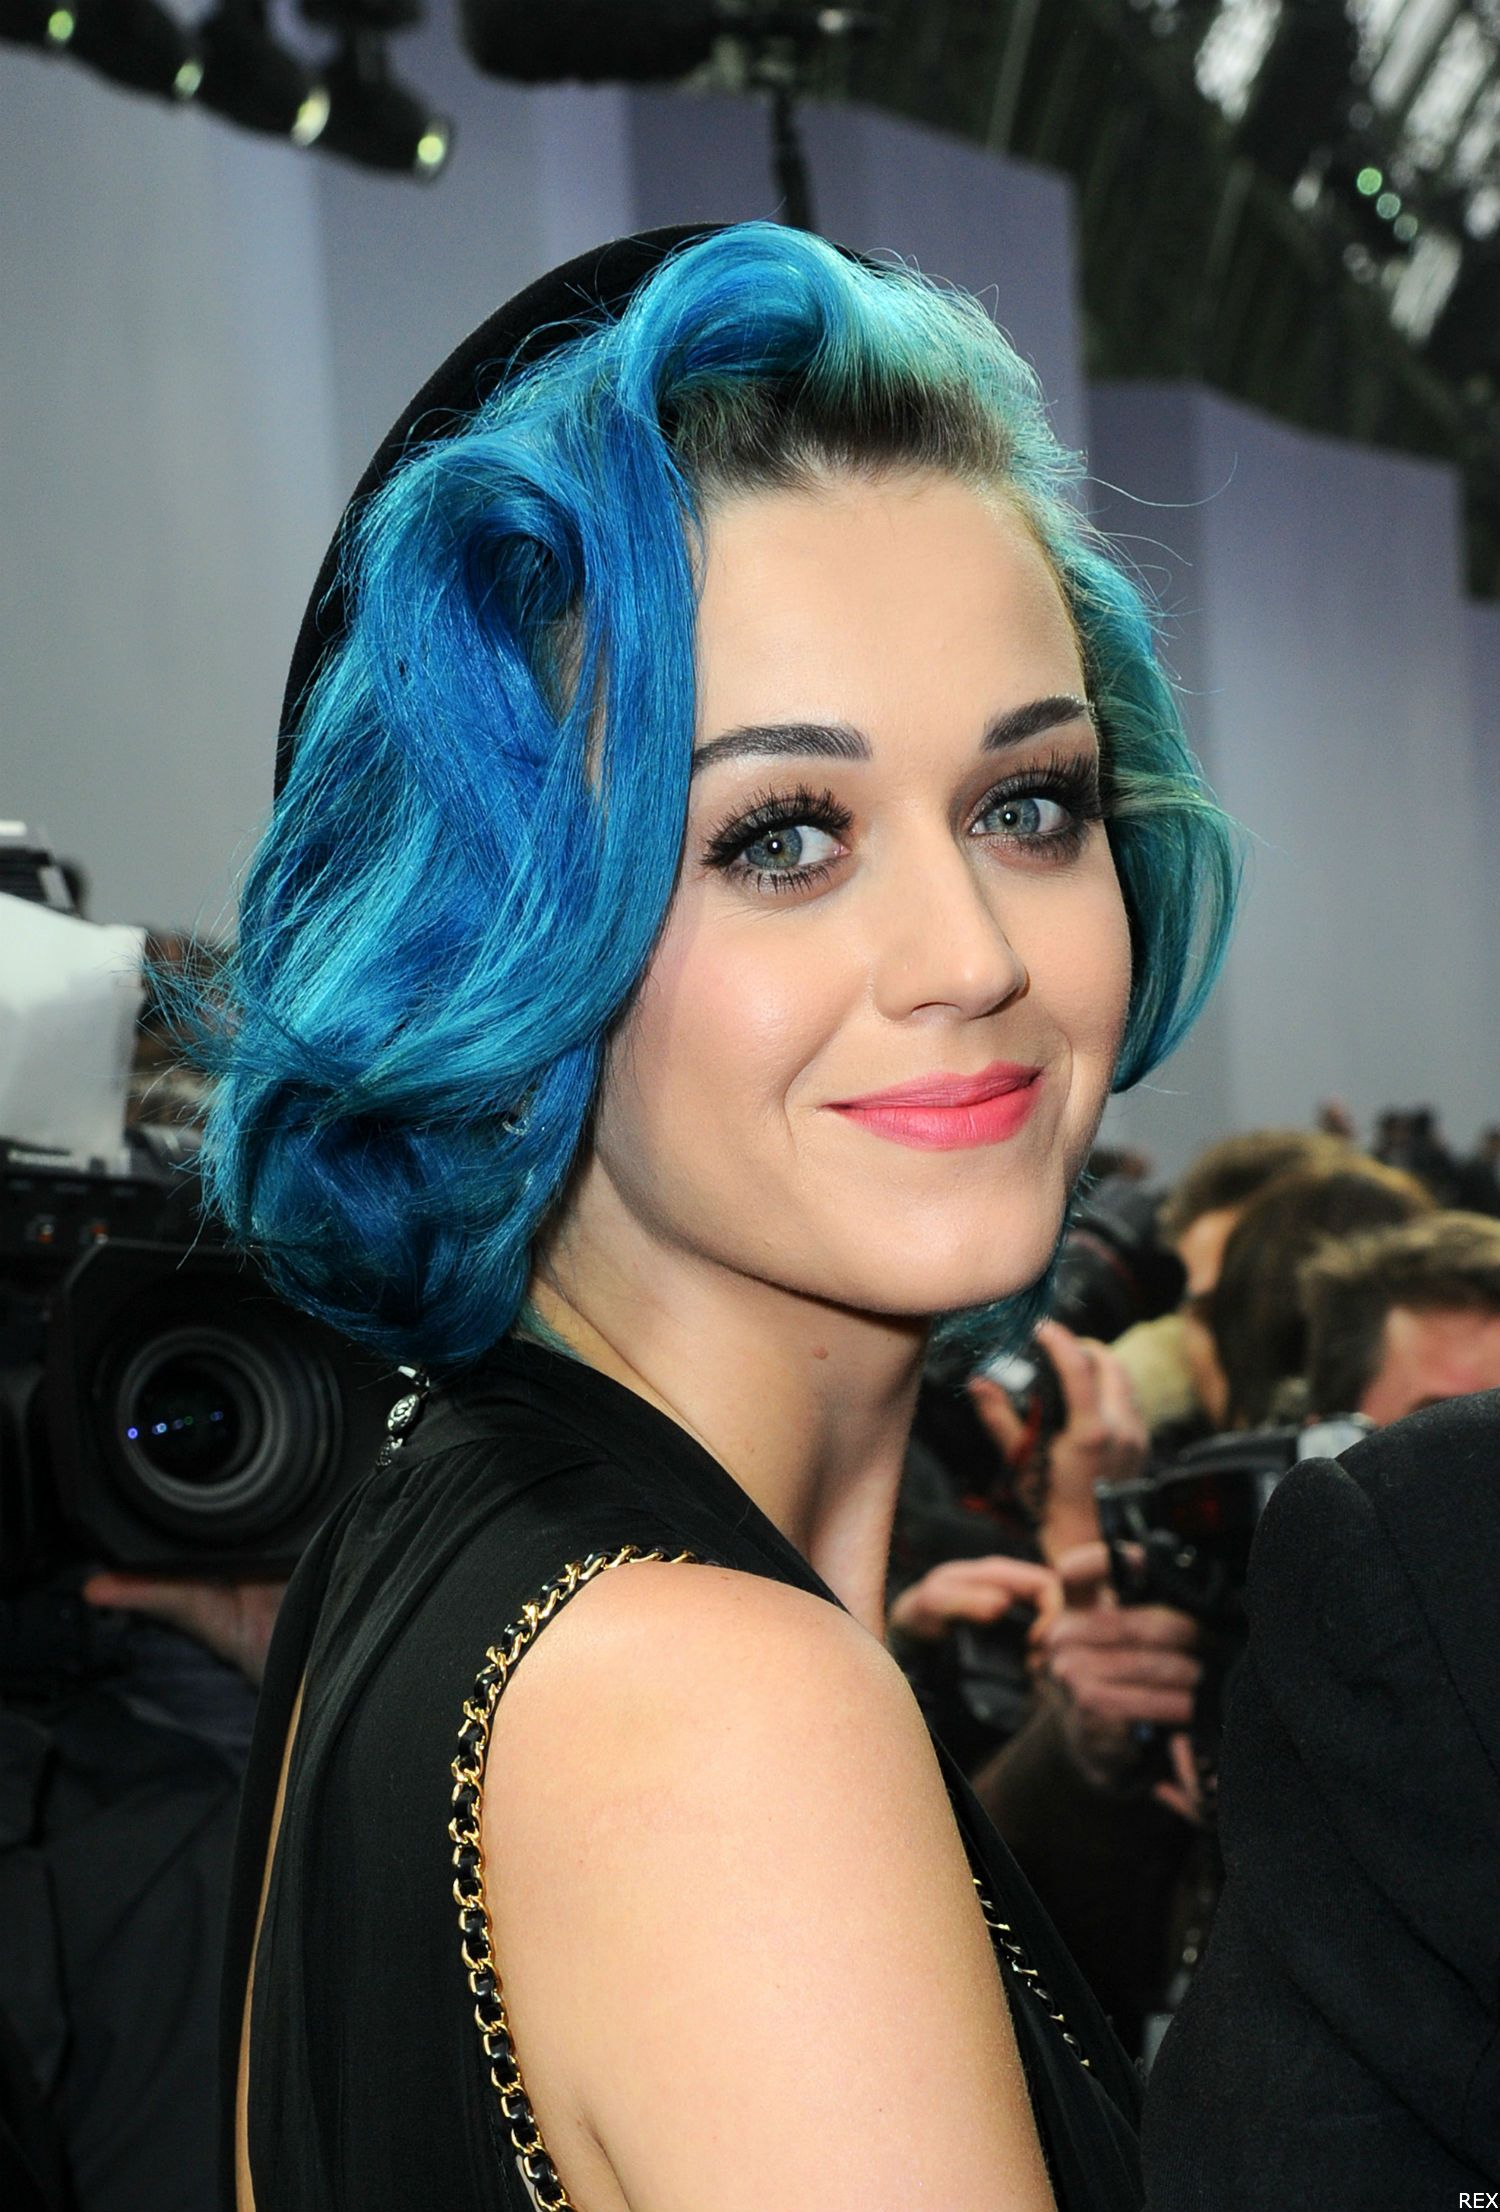 Katy Perry with electric blue hair at Paris Fashion Week